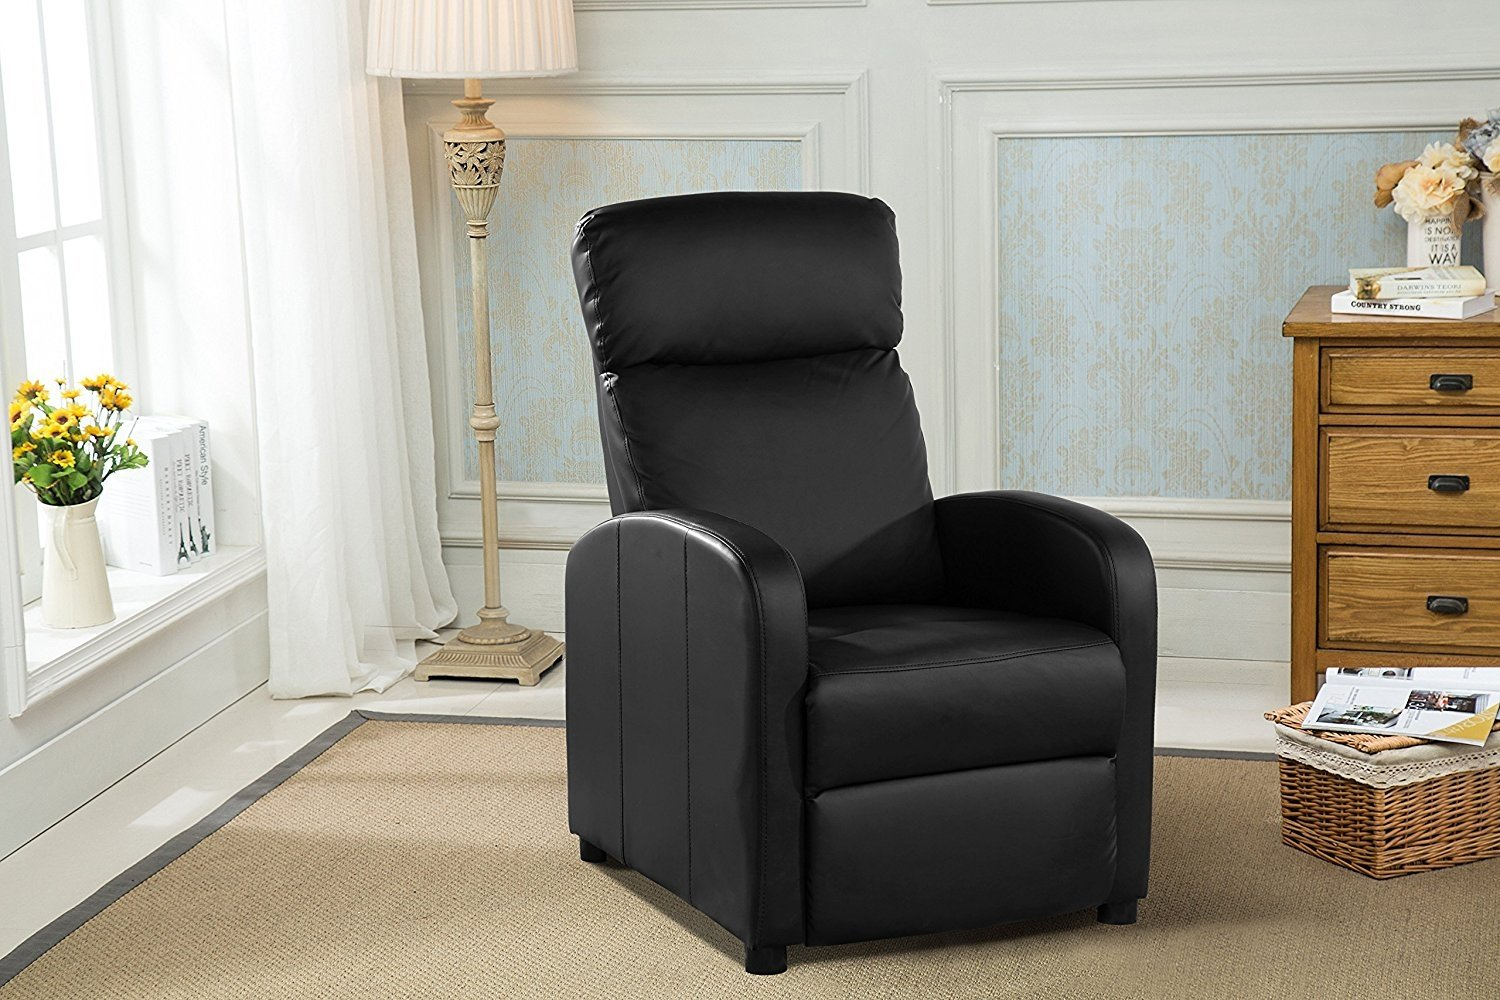 Reclining accent chair for living room faux leather cushioned arm chair black walmart com